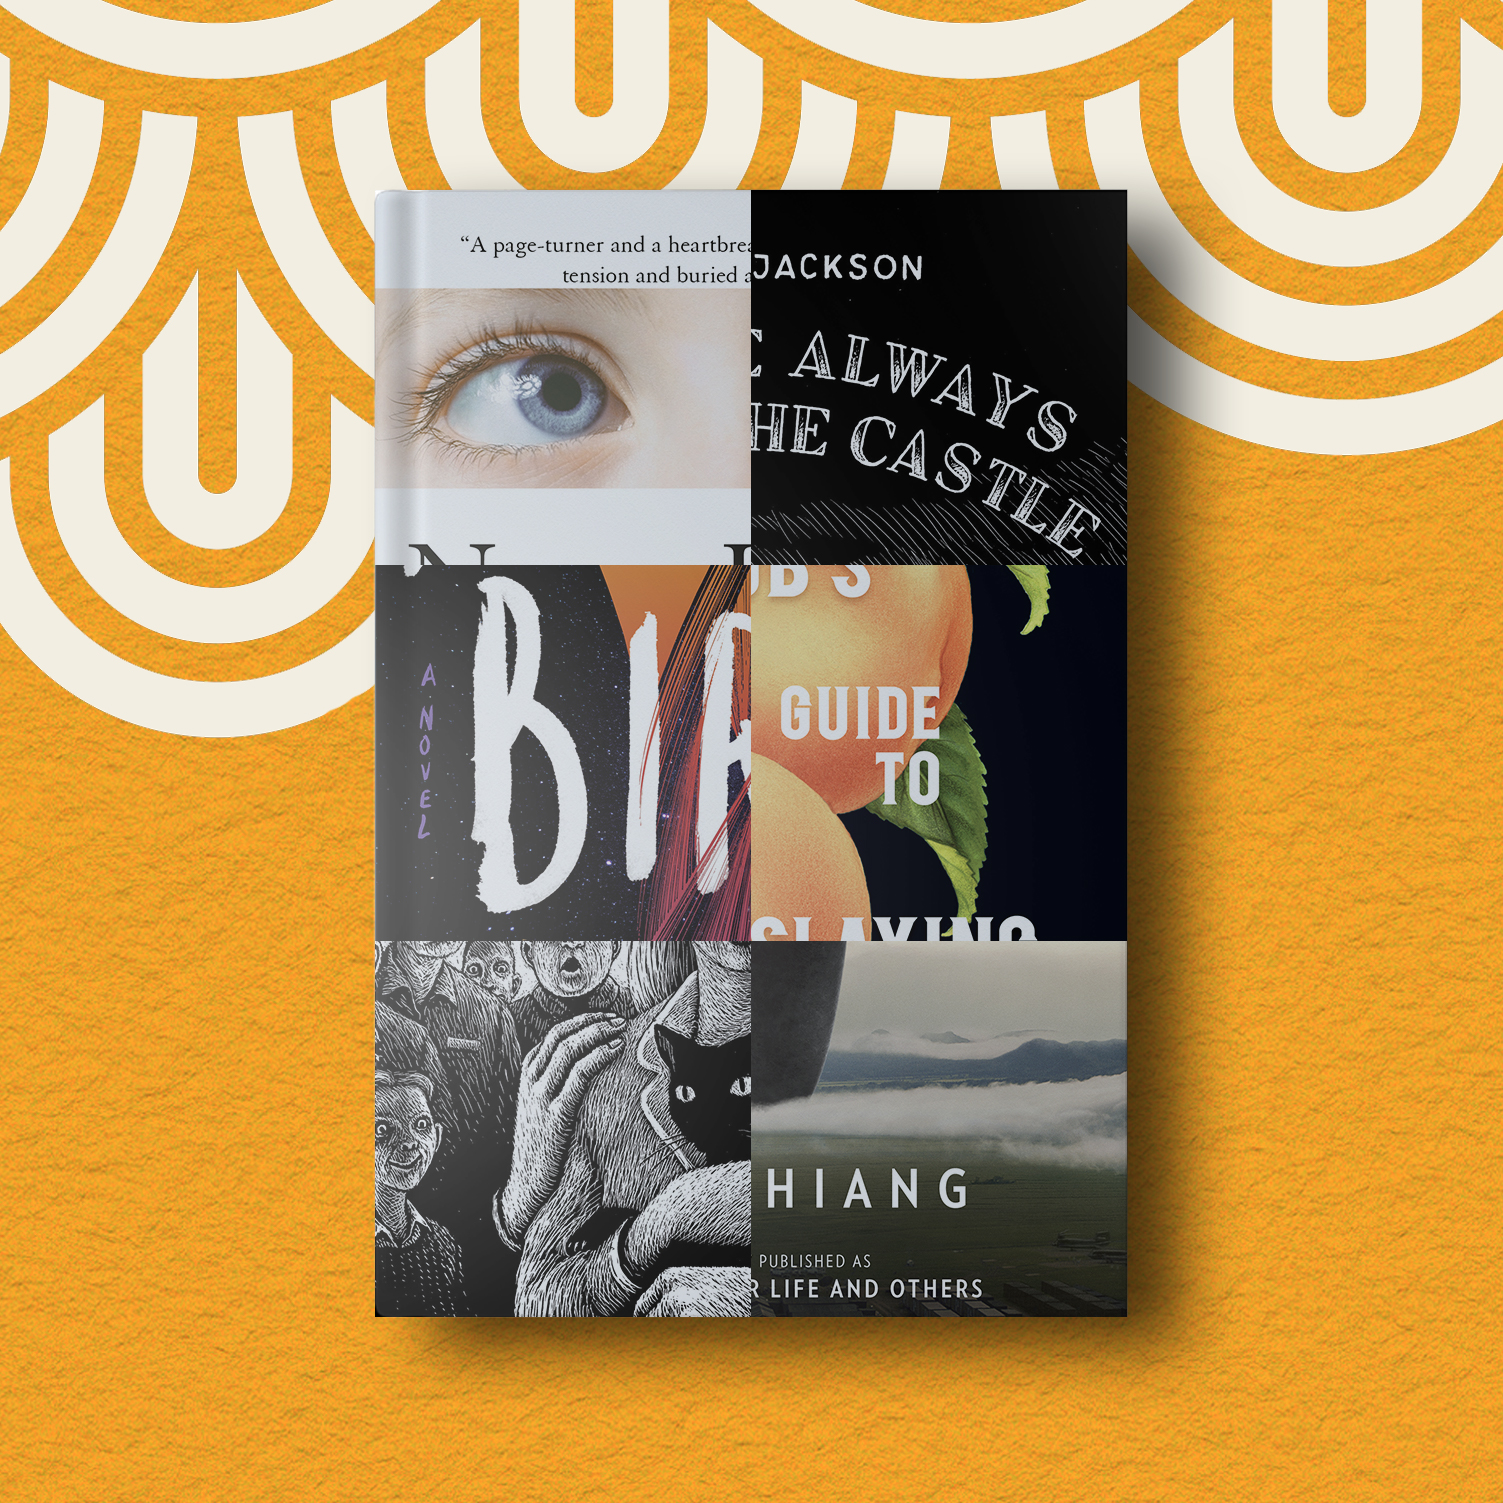 Expert Book Picks From a Trusted Editor